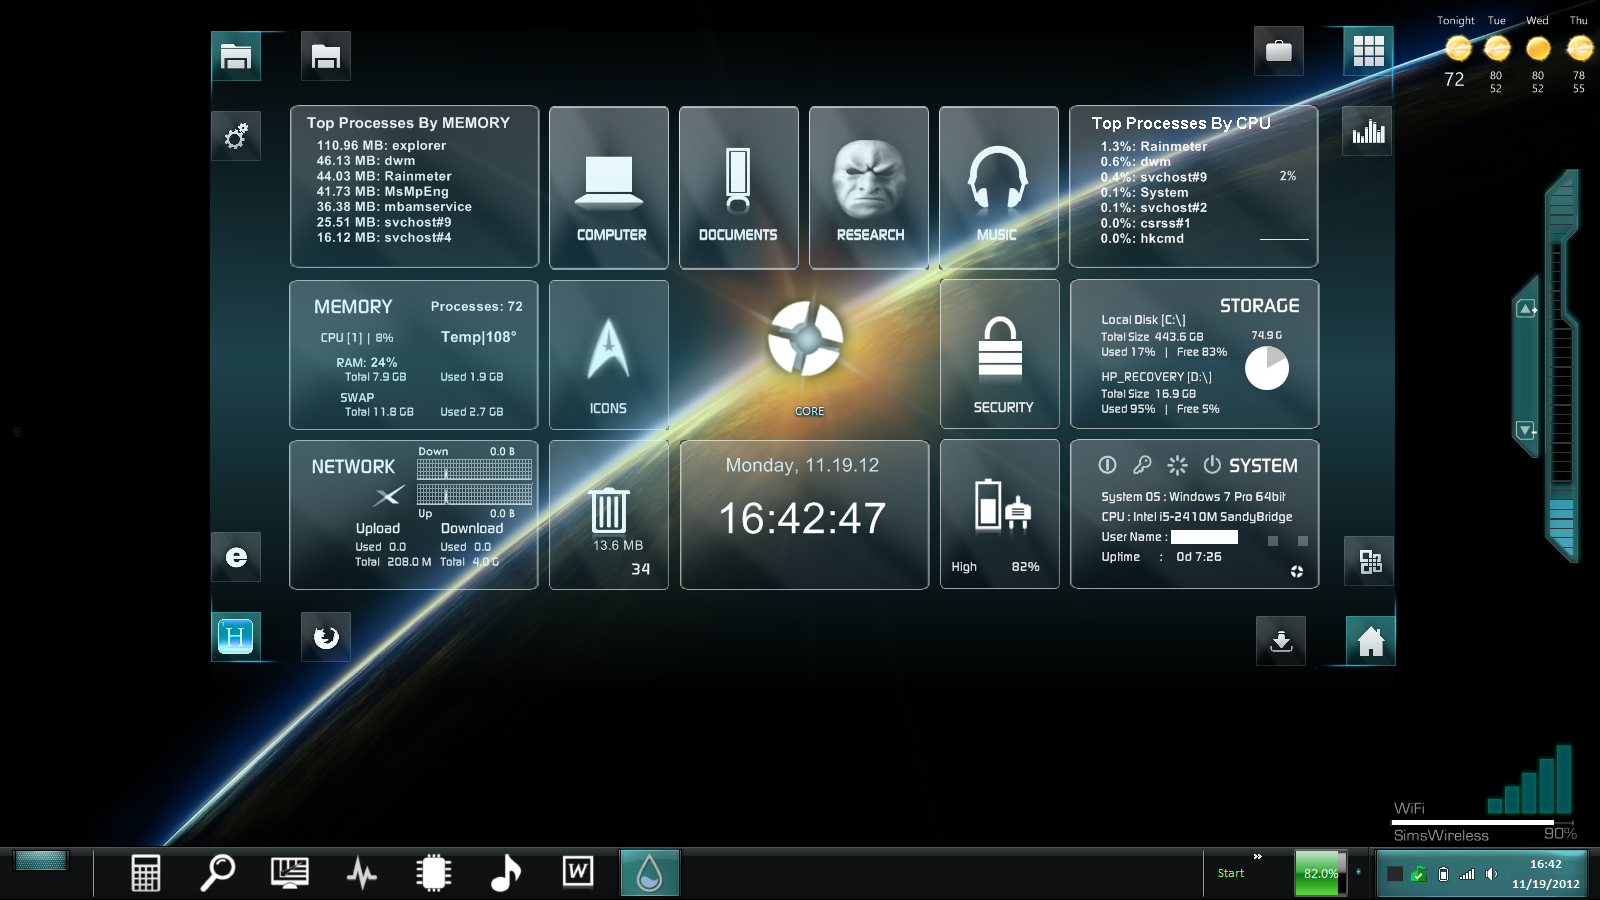 Blue rainbow streak windows7 rainmeter theme for Bureau windows 7 rainmeter